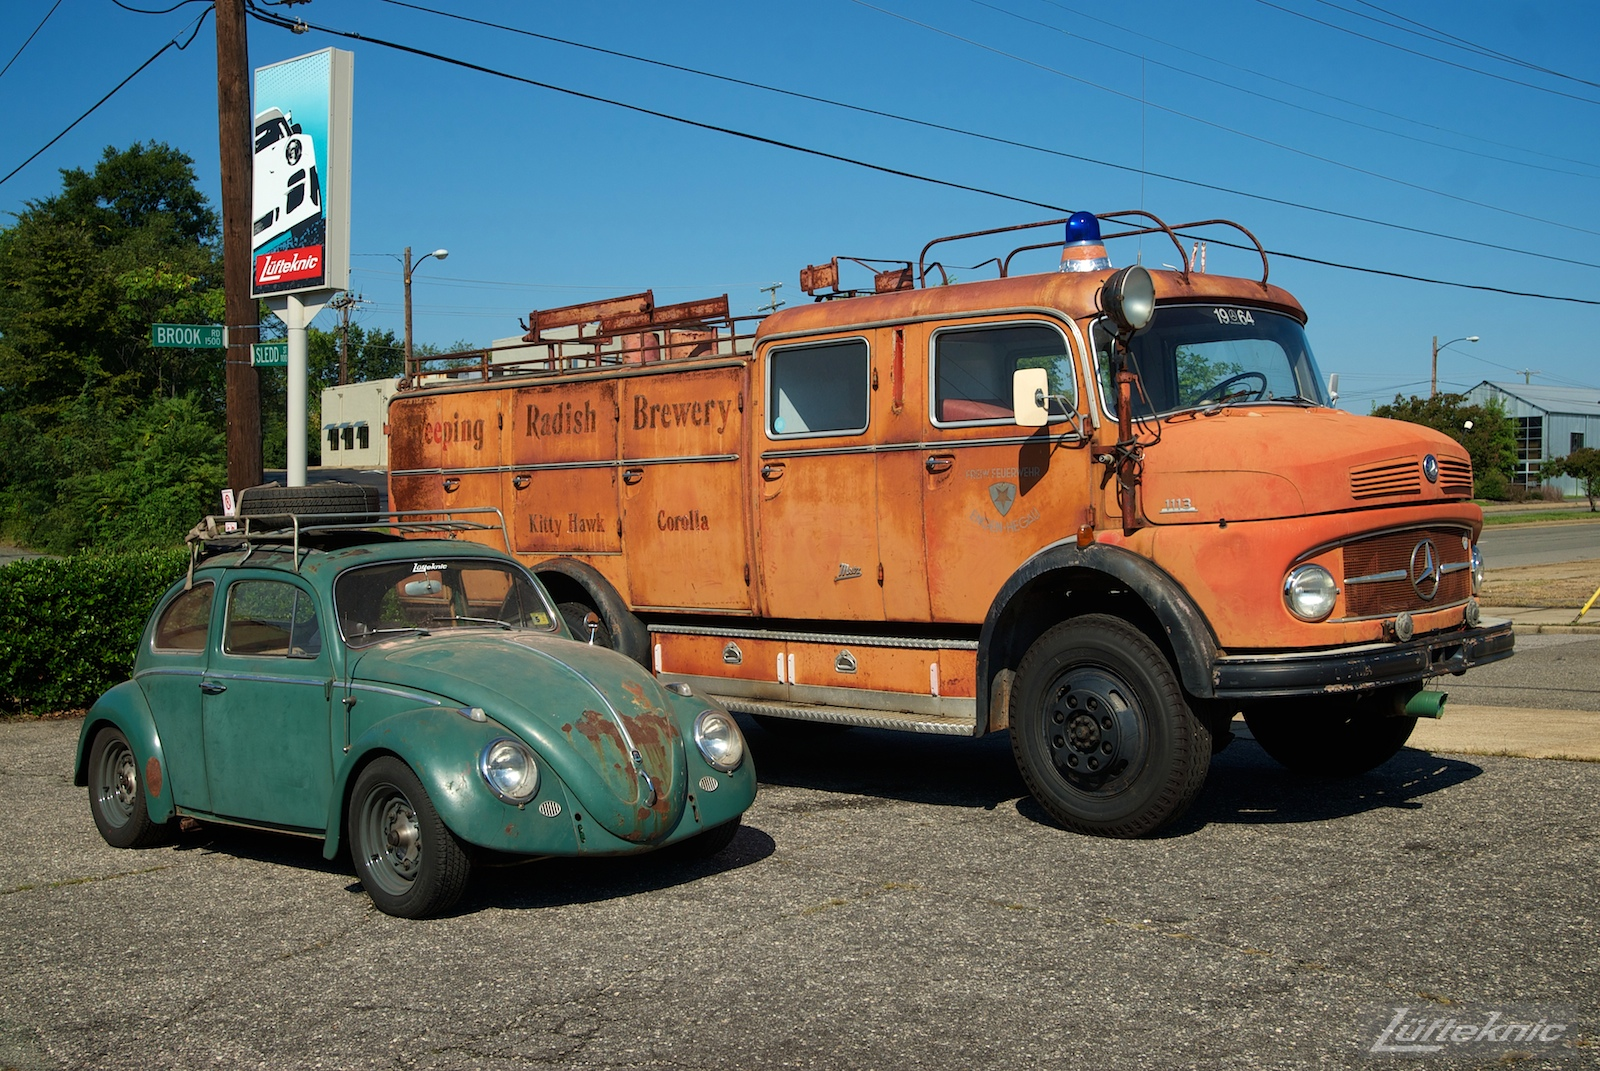 All original green 1960 Beetle with a Porsche 356 engine and brakes with fire truck.